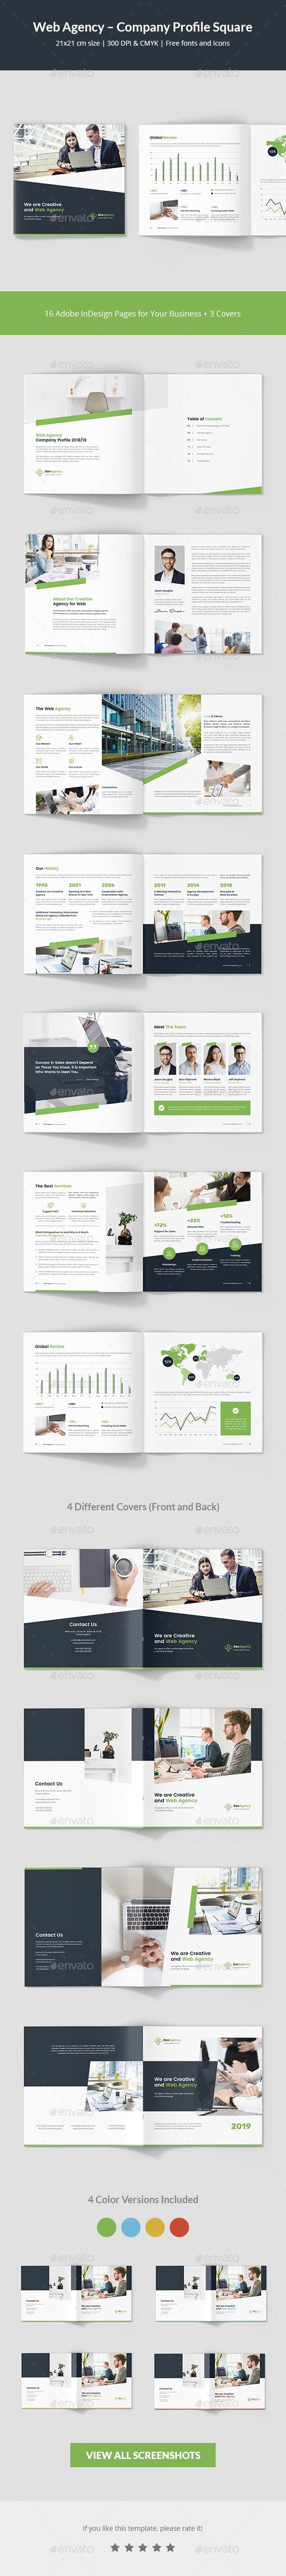 Web Agency - Company Profile Square Brochure Template InDesign INDD